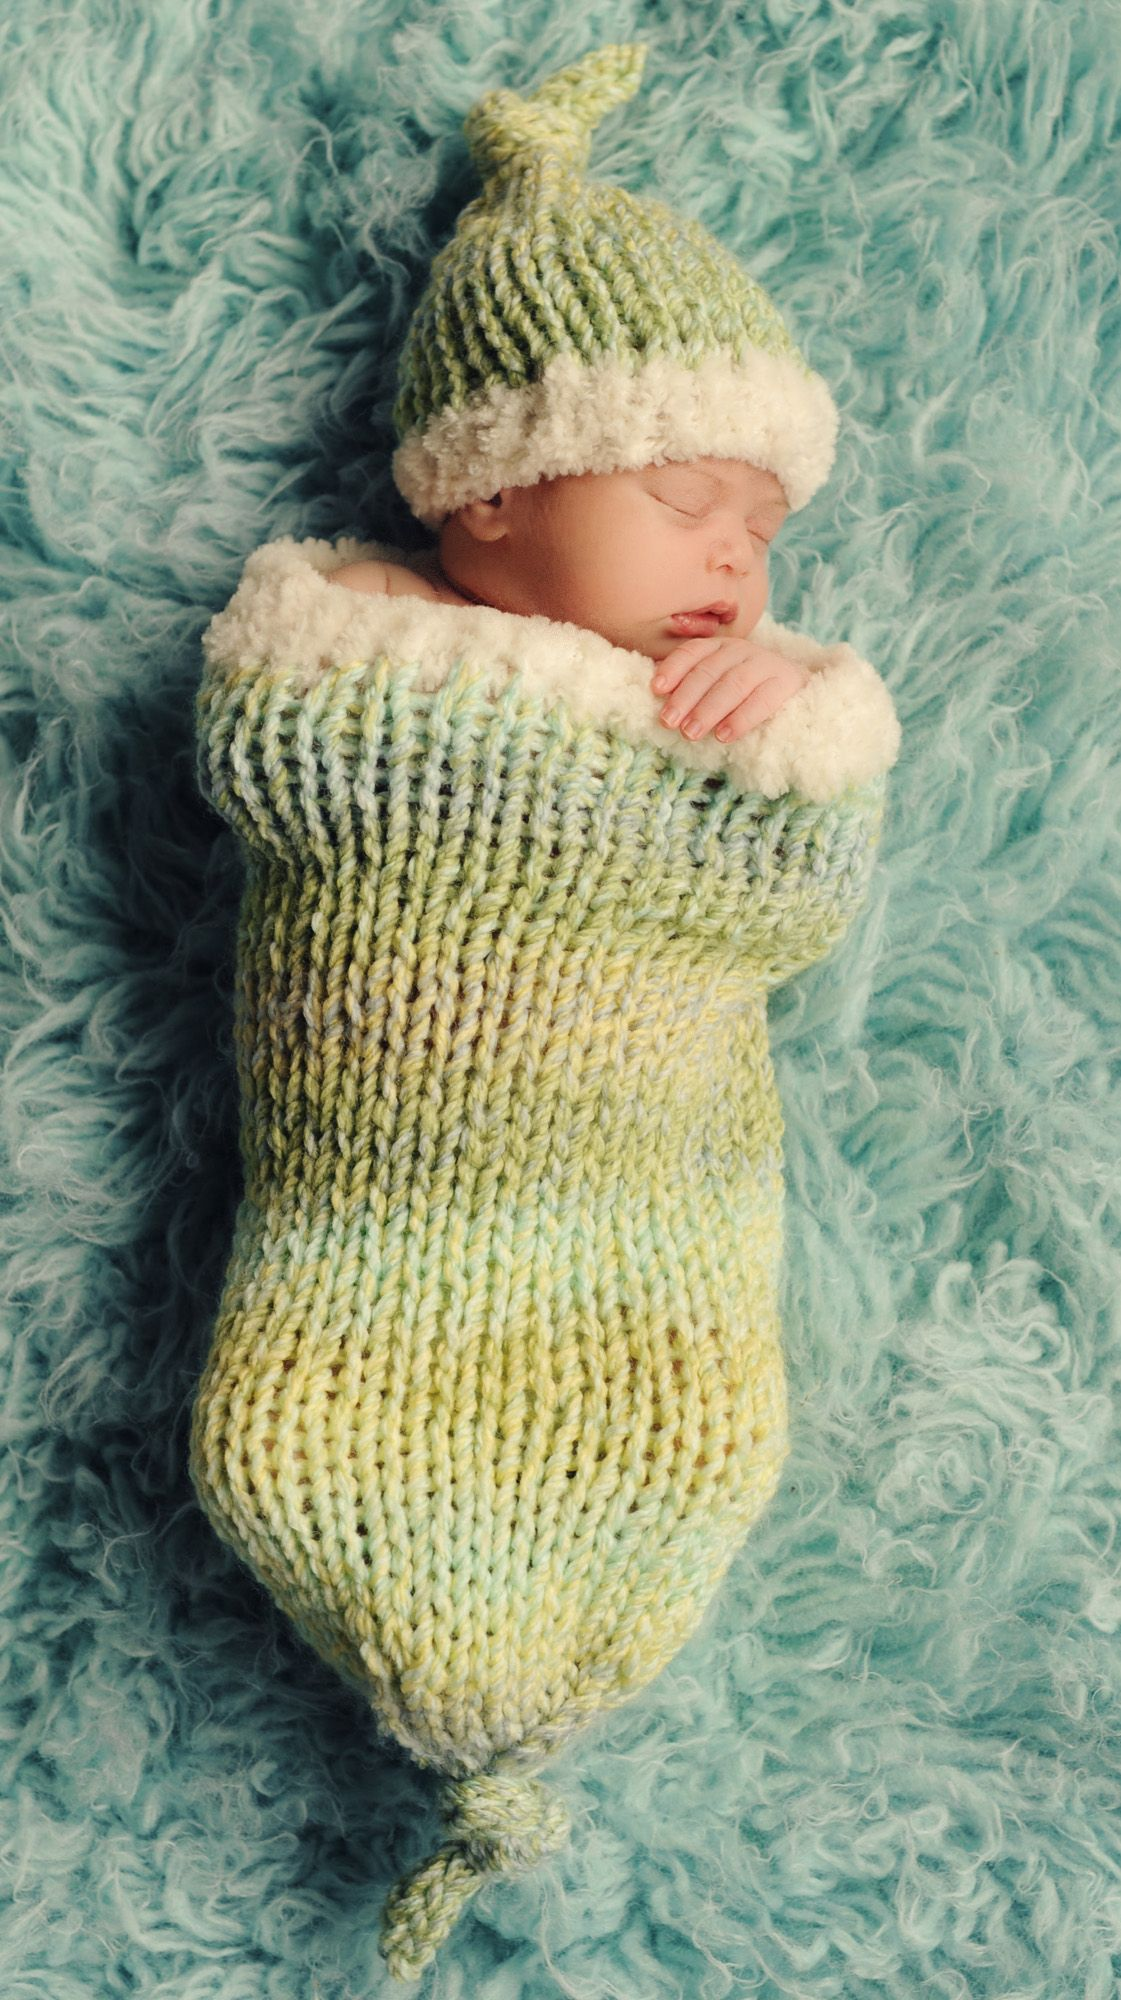 Free Patterns: Baby Cocoons and Hats | Patterns, Baby cocoon and Babies